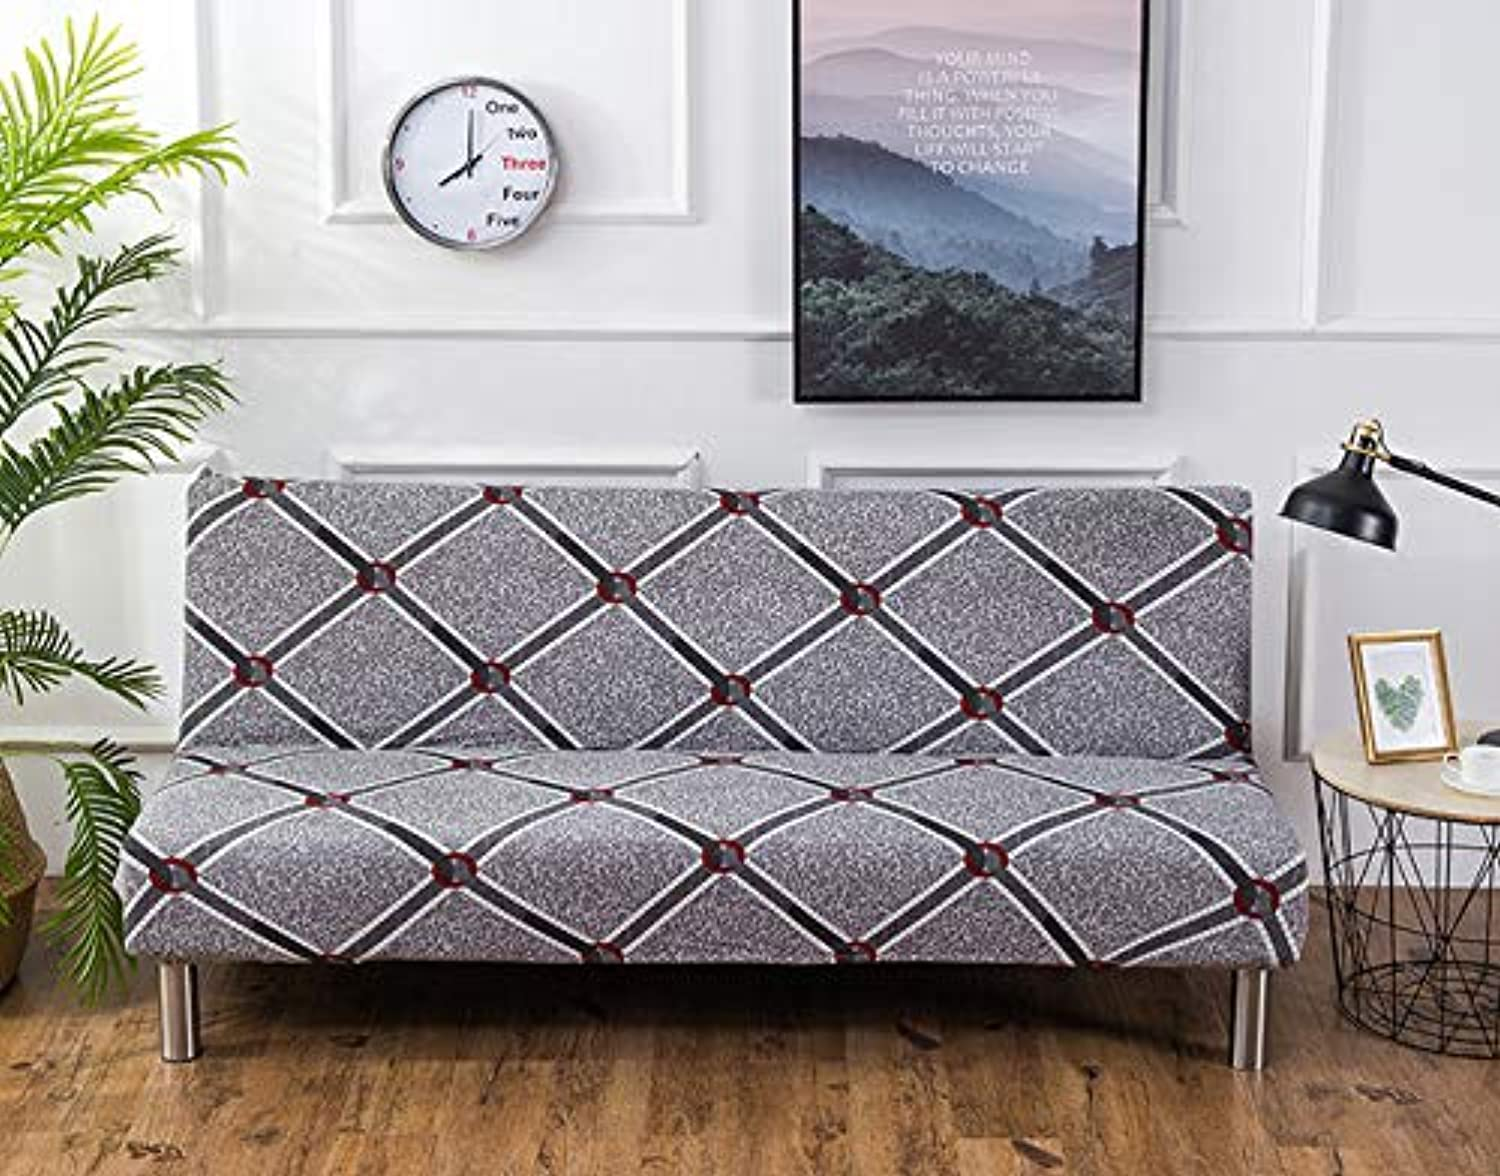 Universal Sofa Cover Stretch Big Elasticity Couch Cover Sofa Furniture Sofa Cover Without Armrest Folding Cover for Sofa Bed 1pc   06, Big Size